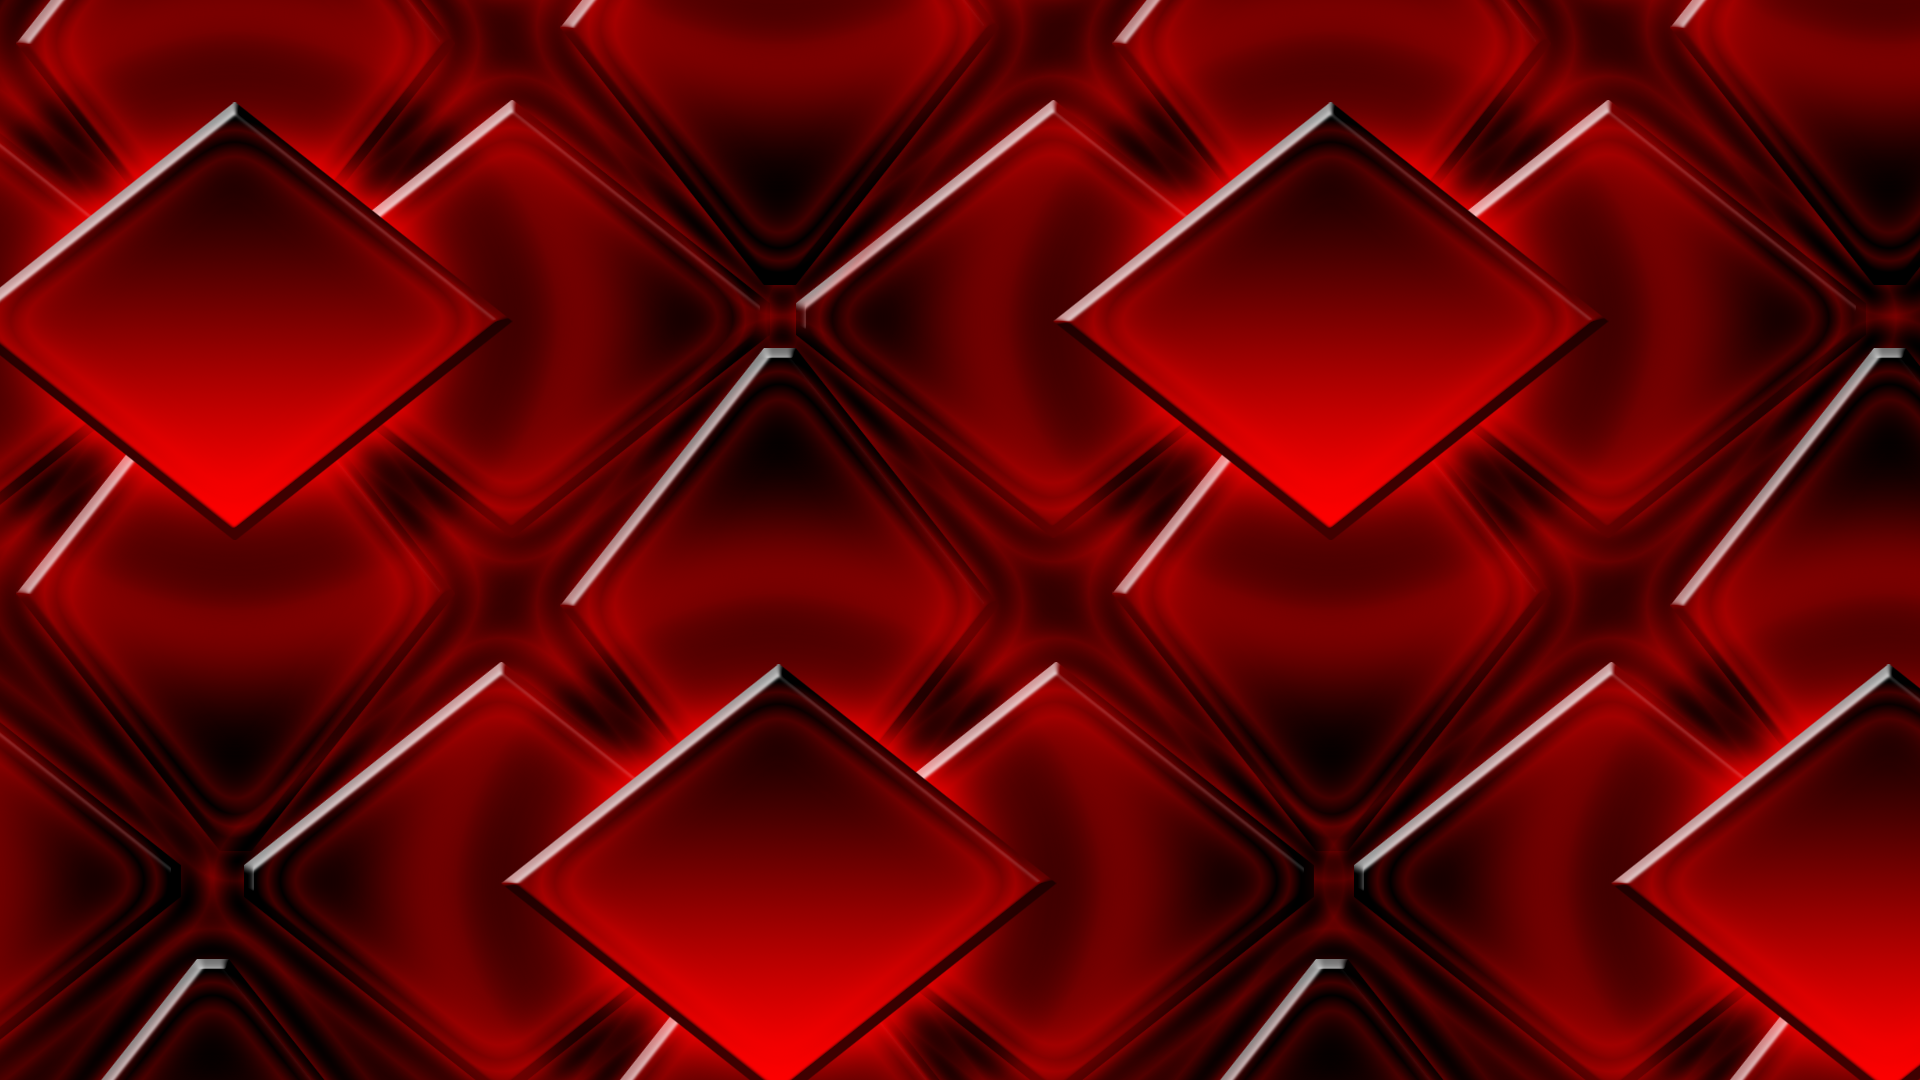 Black and red diamond wallpaper by supergamerx on deviantart for Red 3d wallpaper